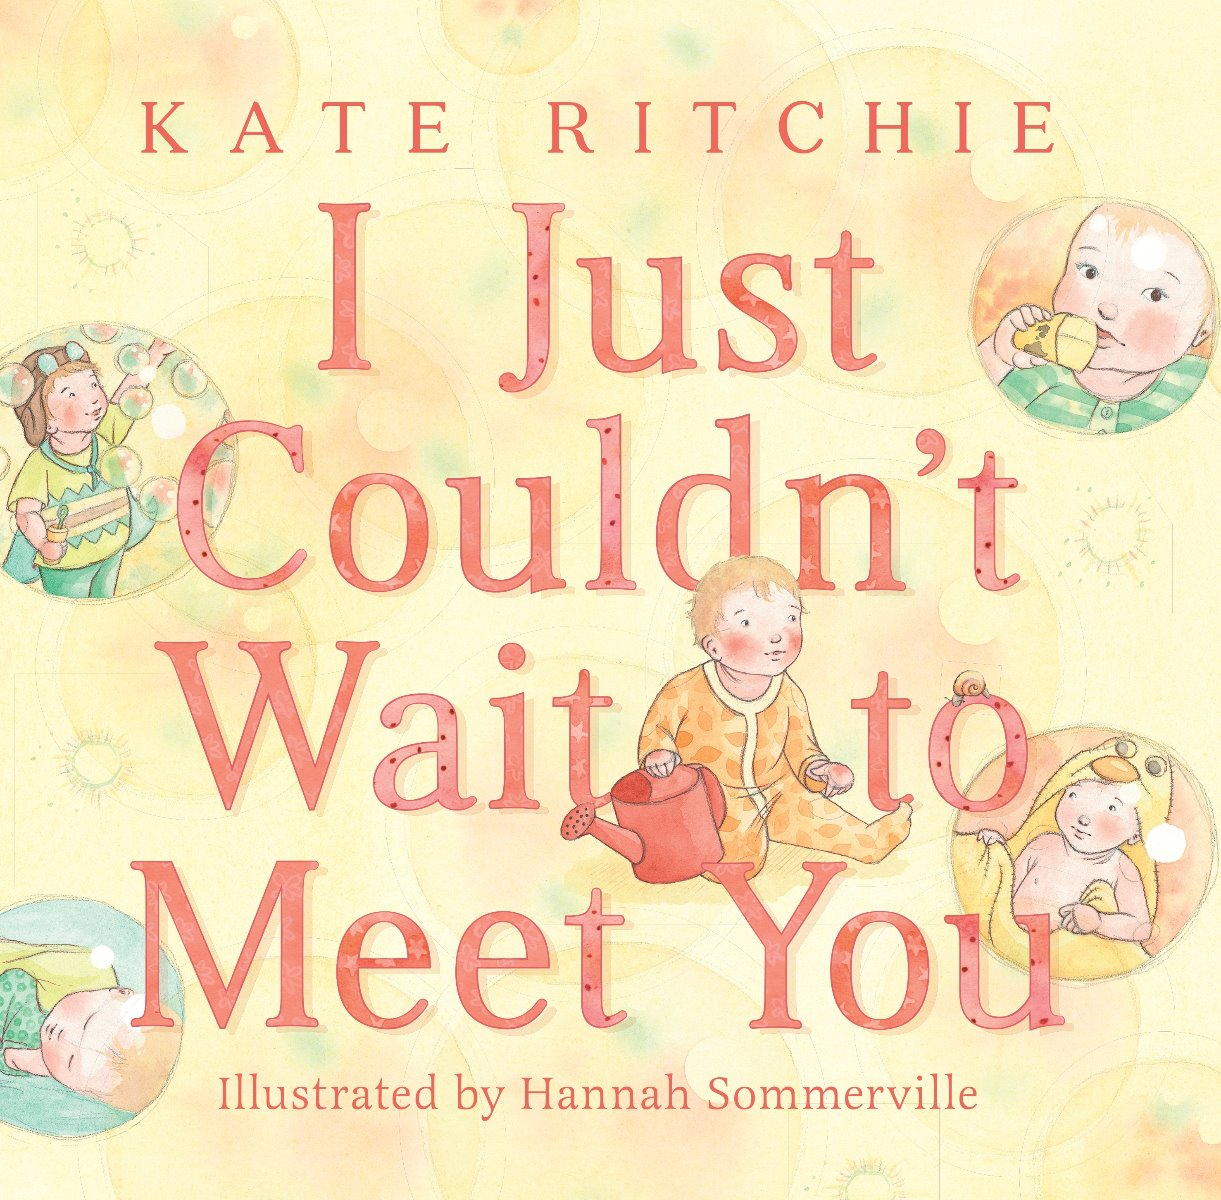 Just Couldnt Wait to Meet You - Ritchie and sommerville HB